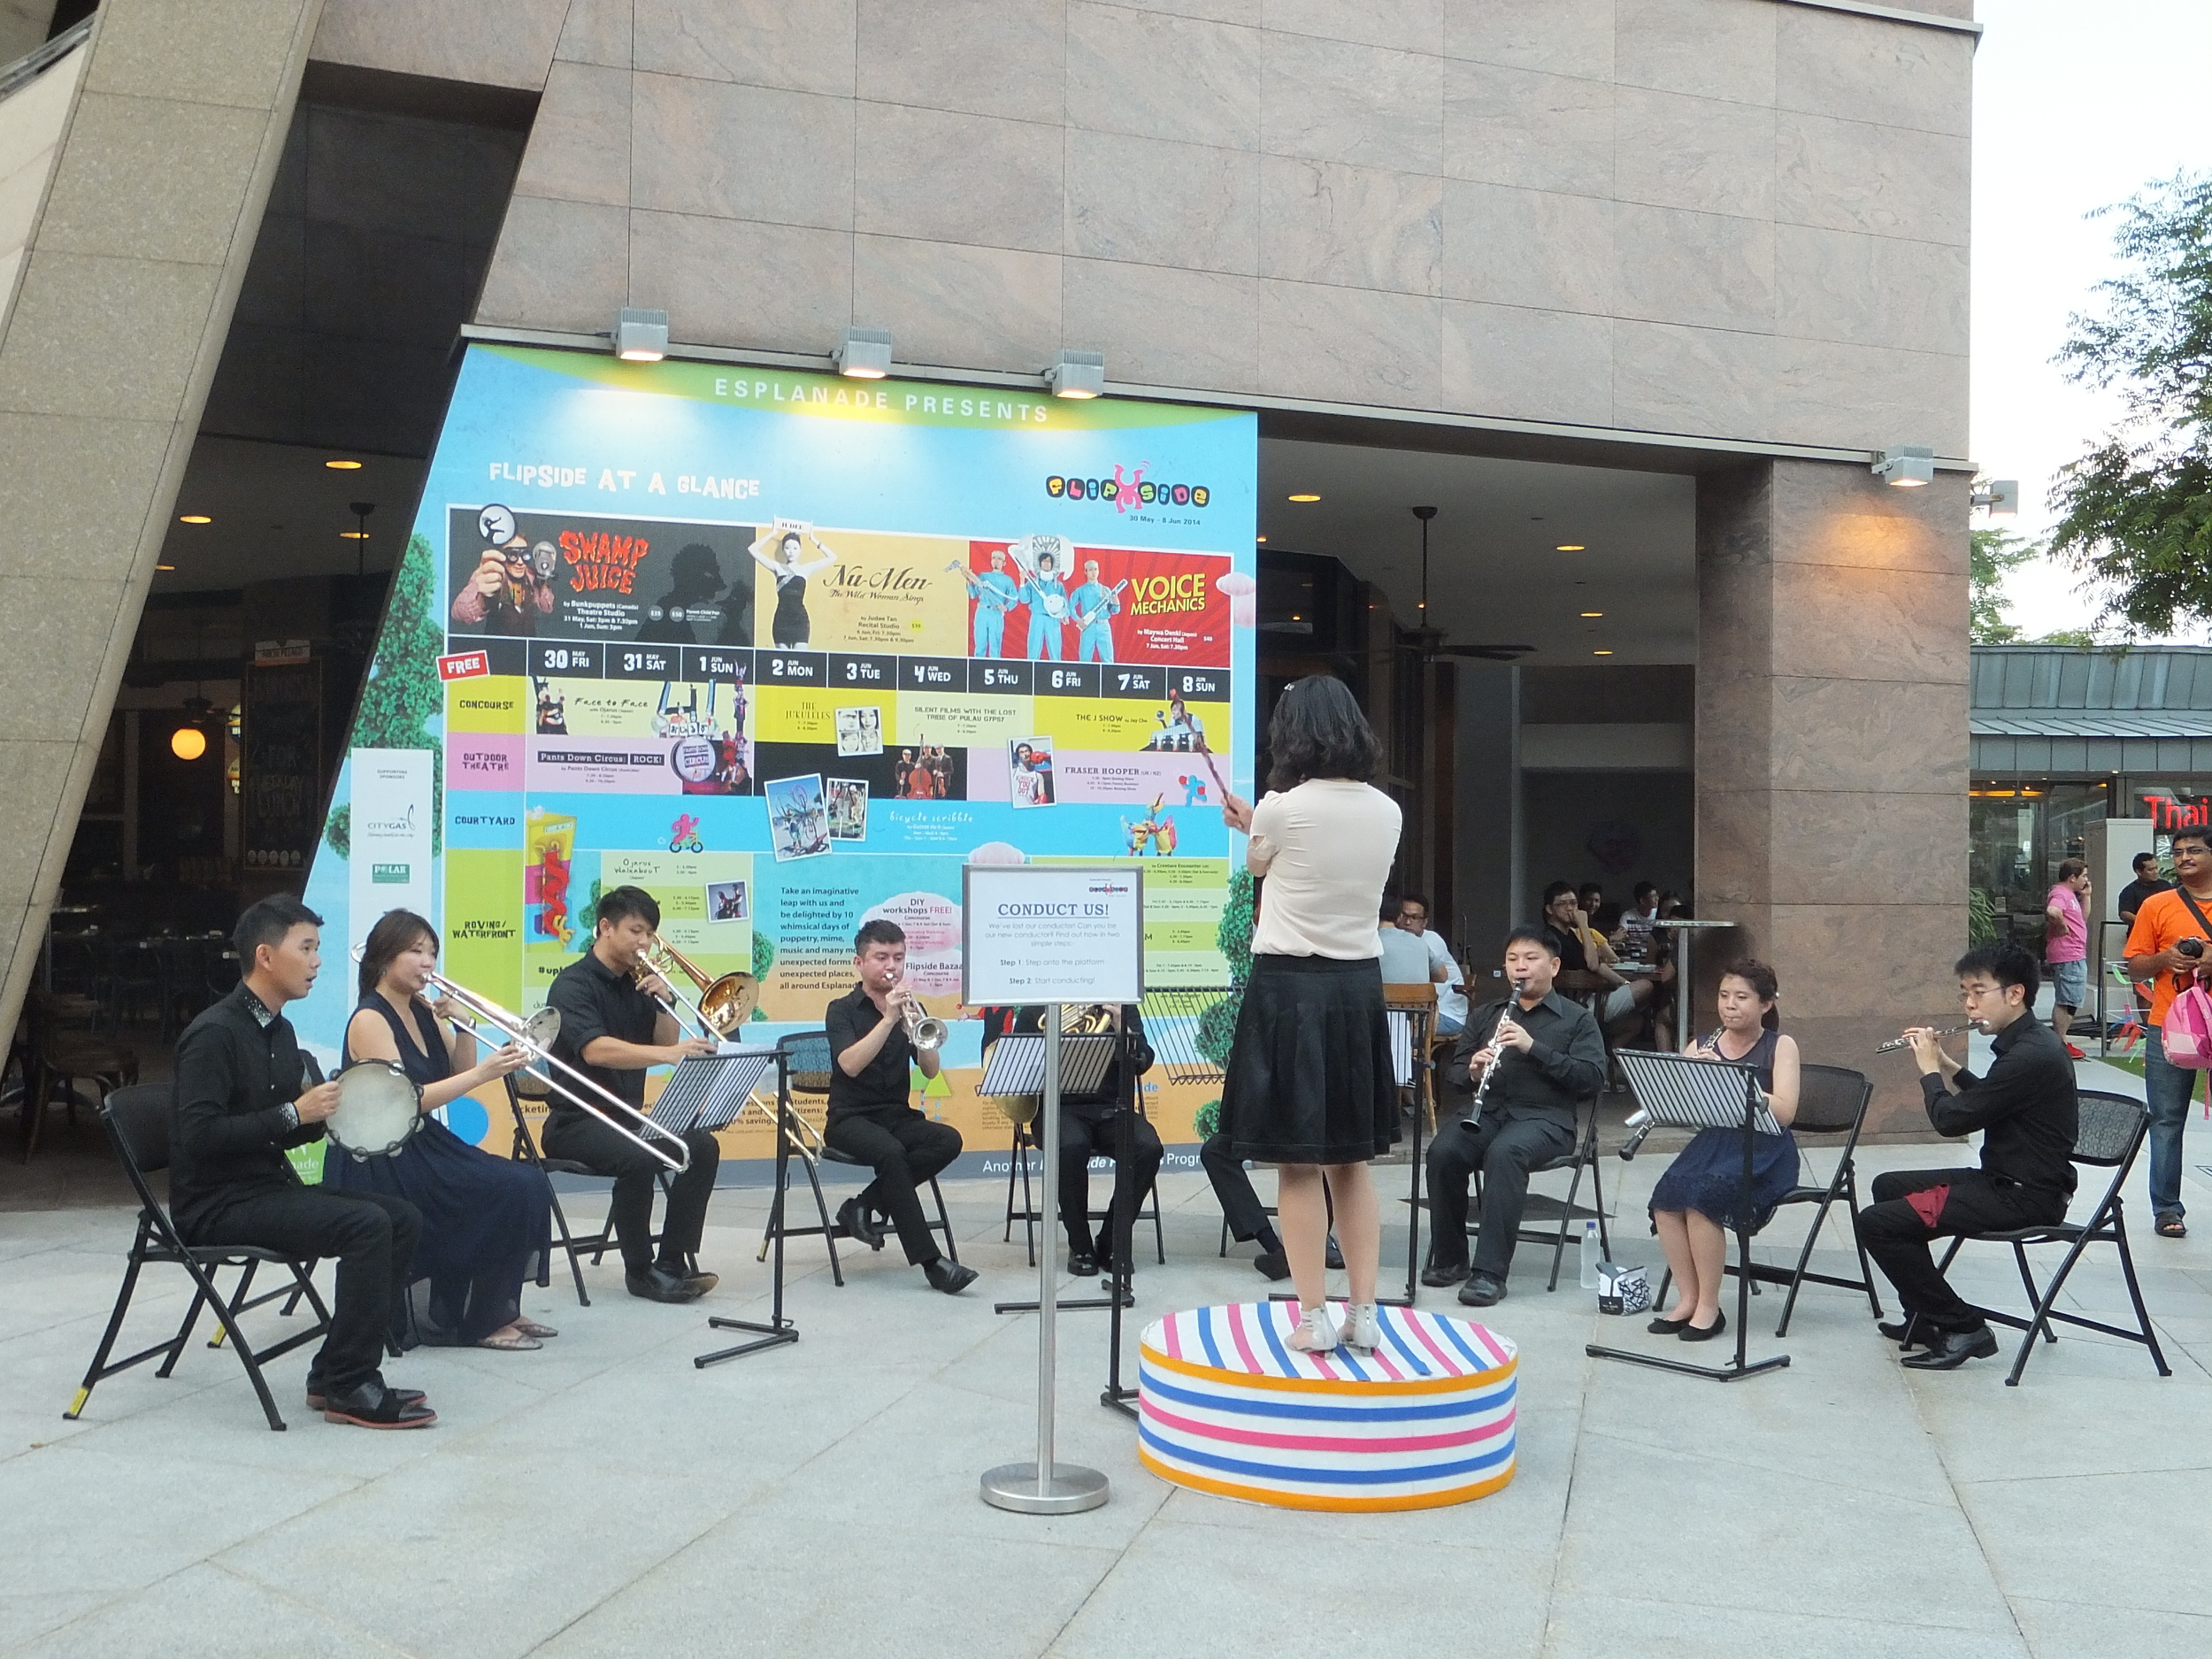 North Korean conducts an orchestra in Singapore!